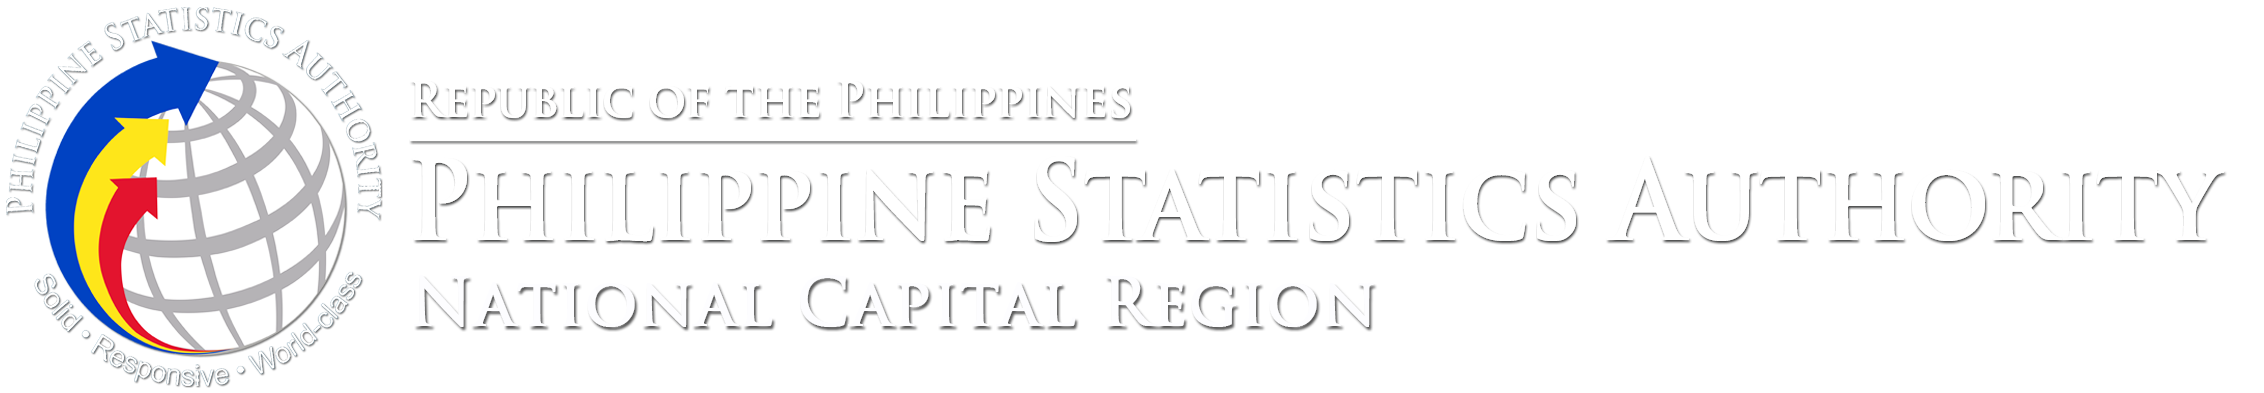 Philippine Statistics Authority National Capital Region